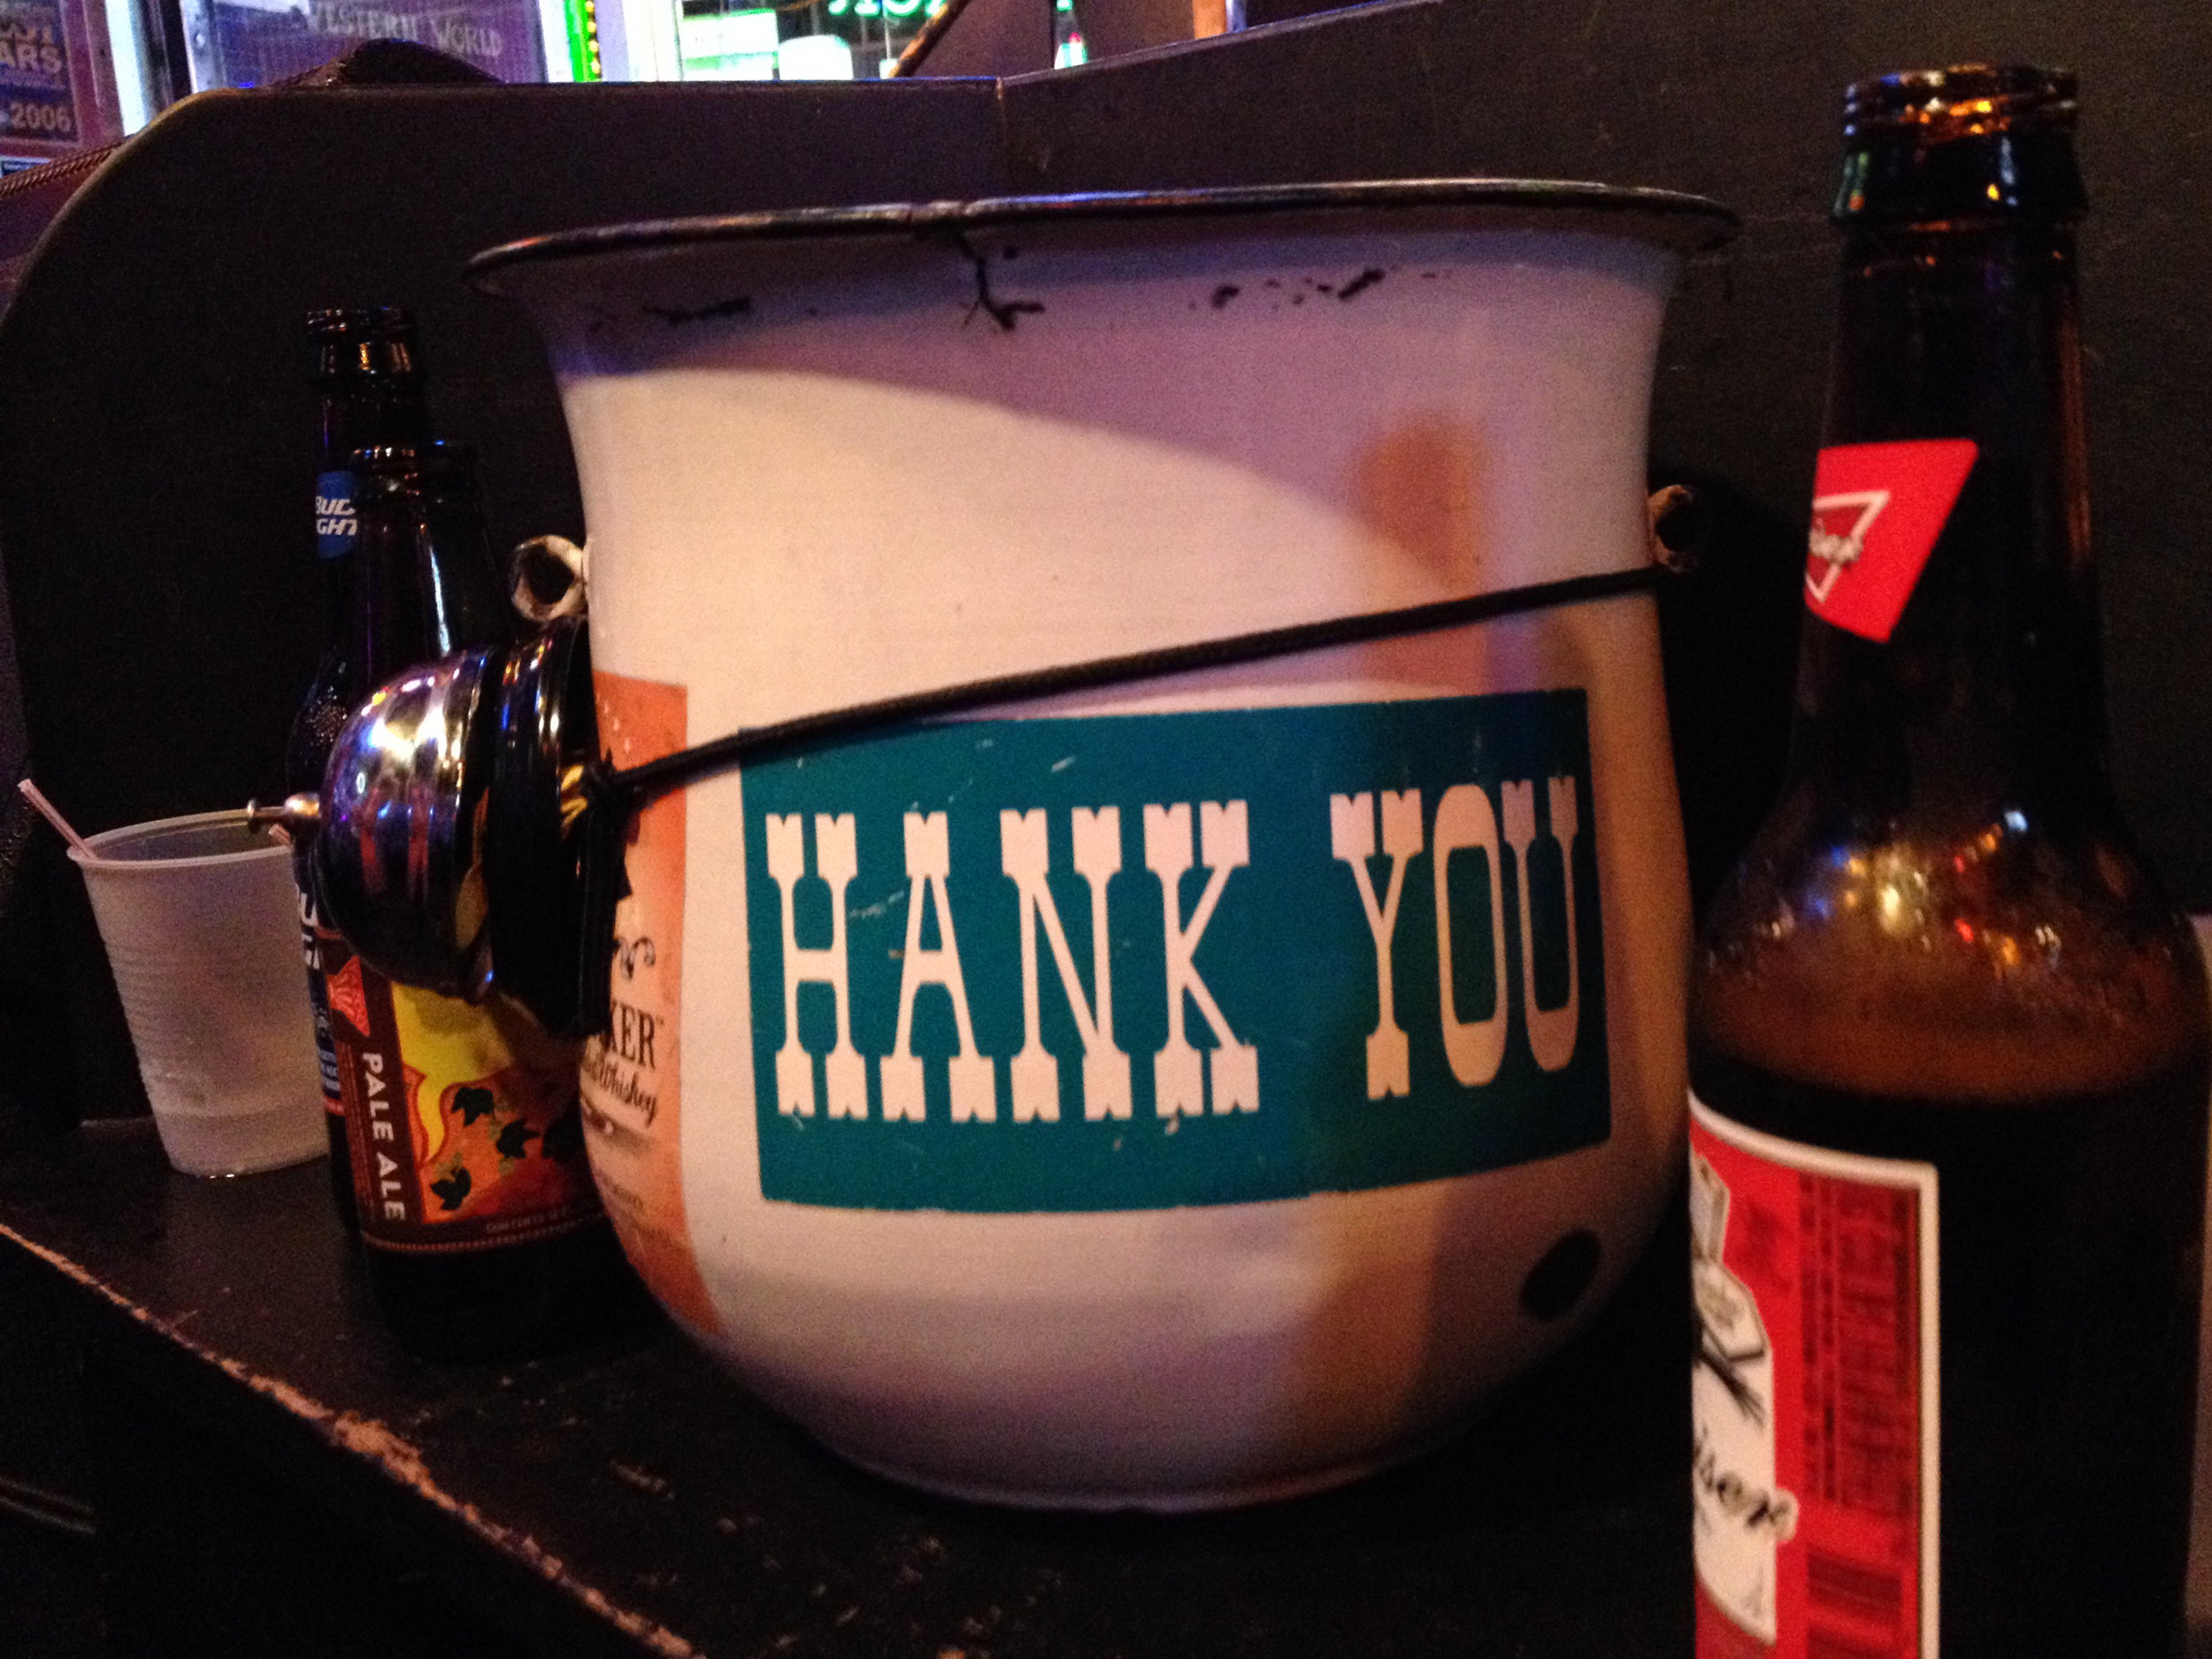 Tip jar at Robert's Western World in Nashville, TN